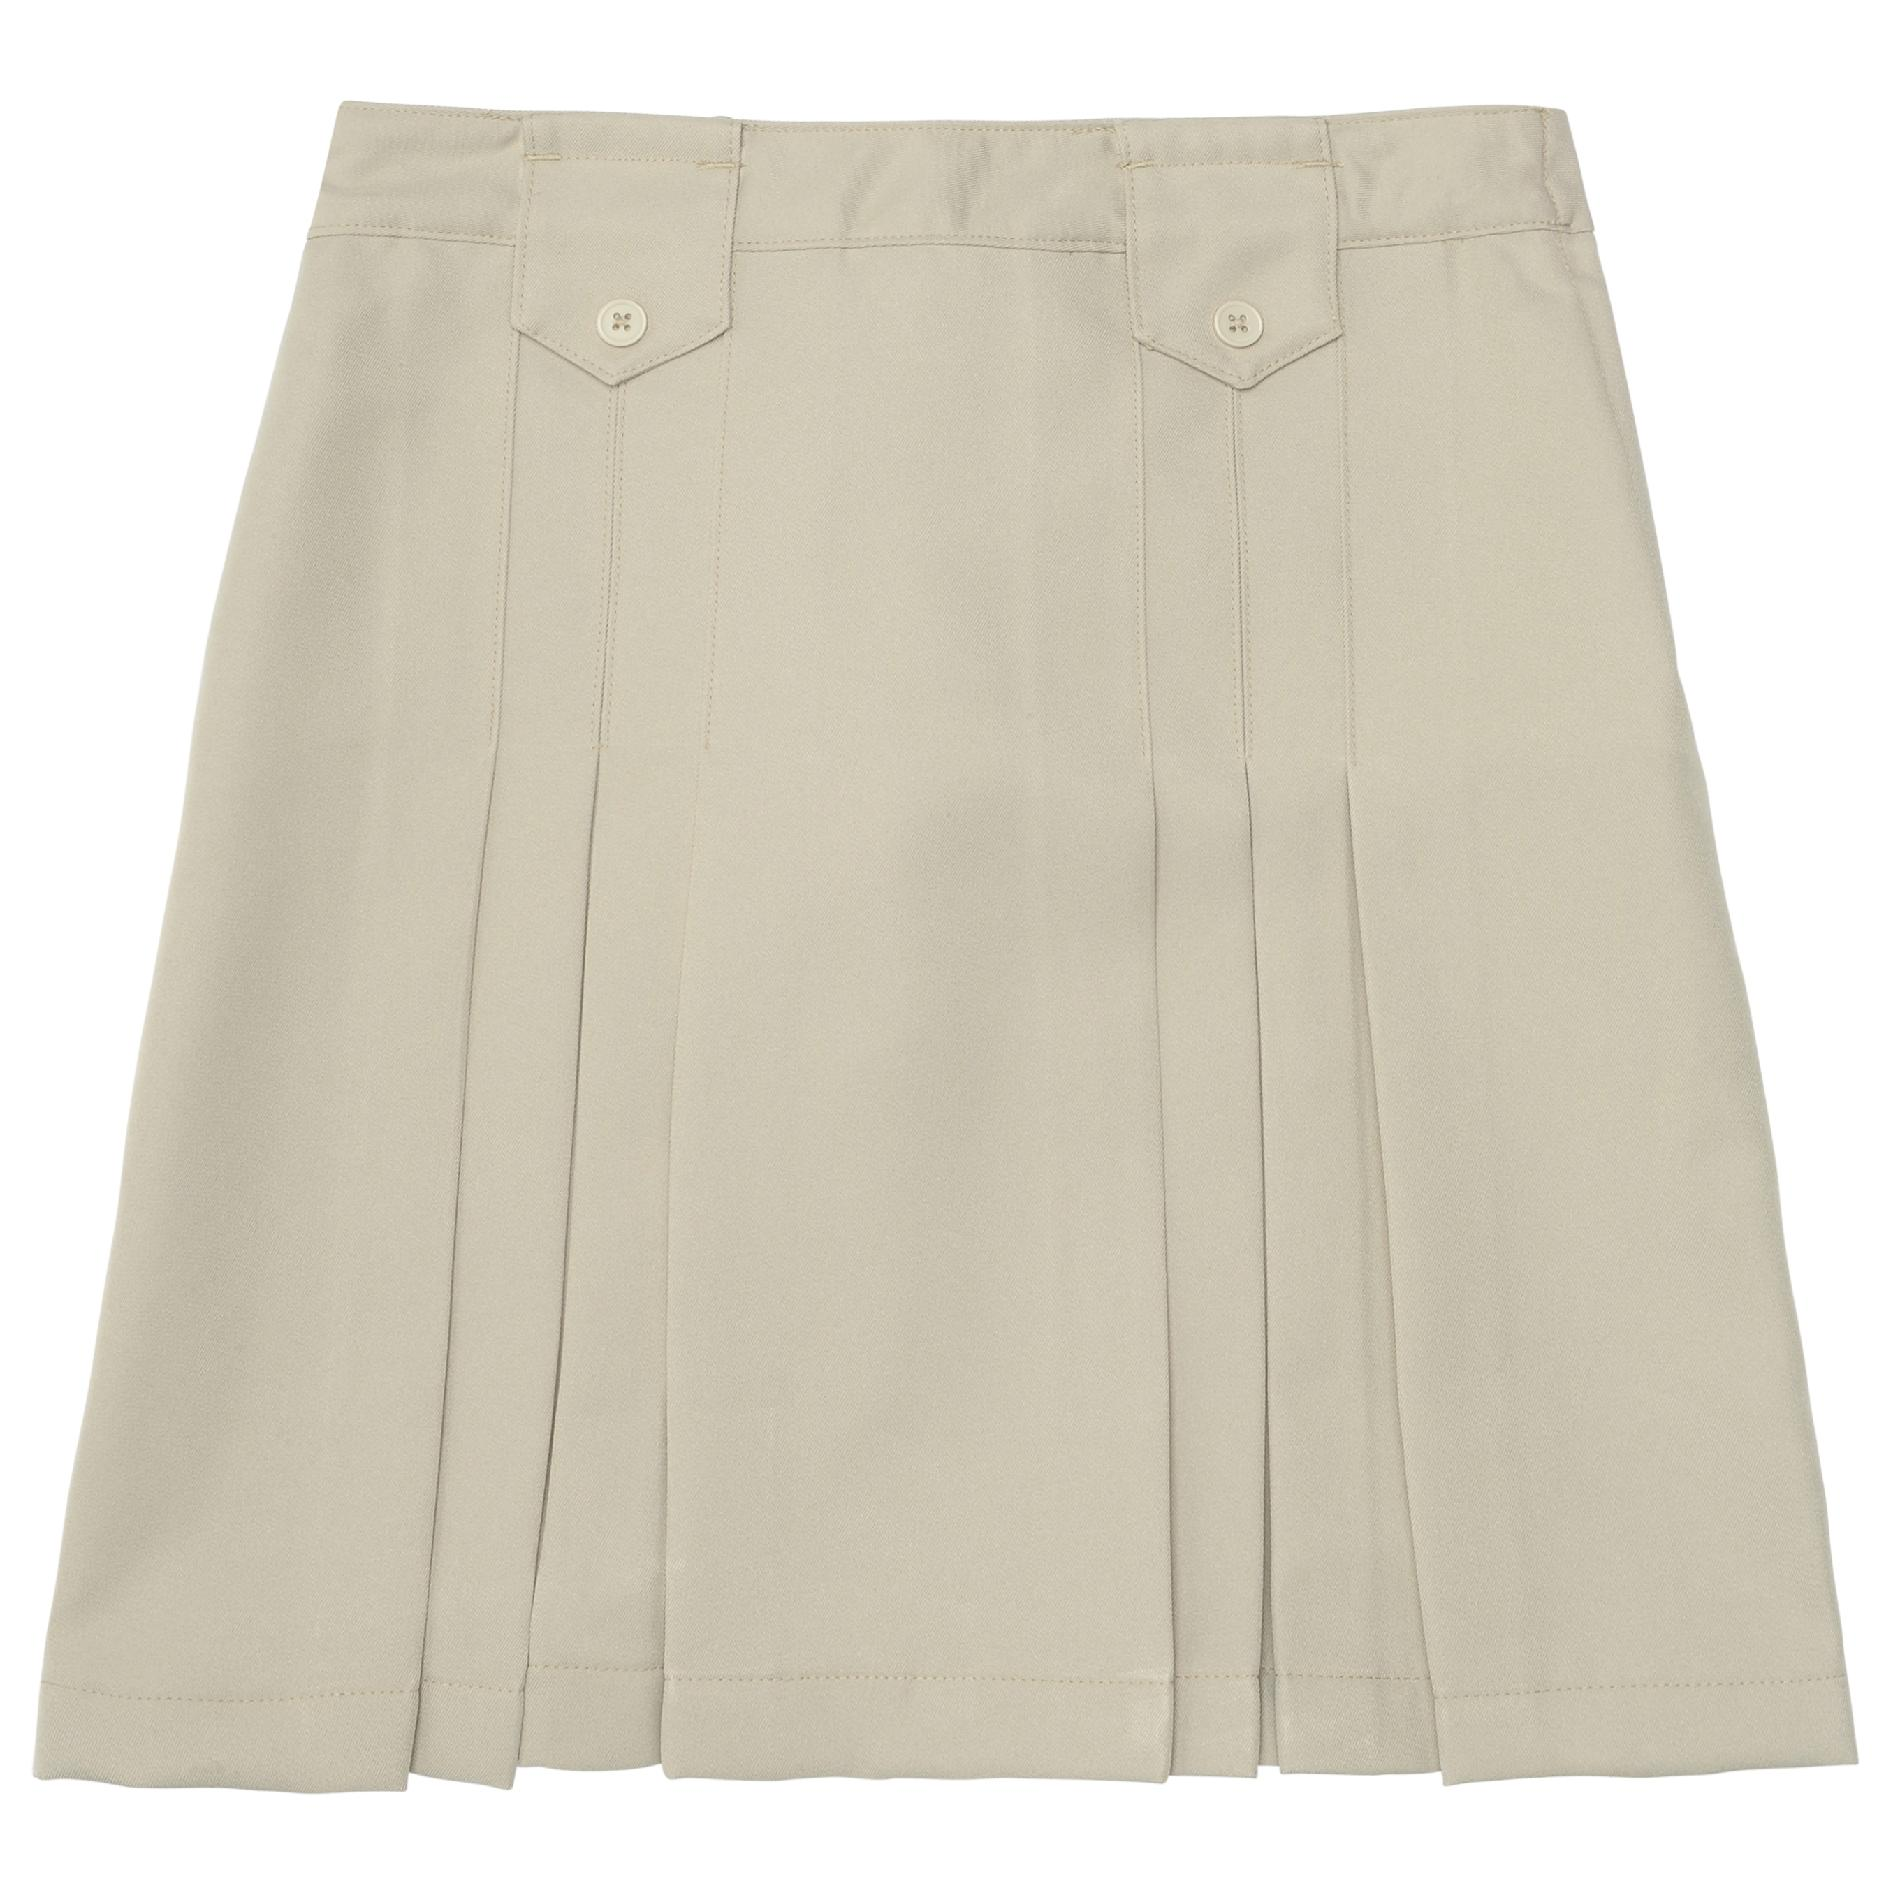 School Skirts Kmart At School By French Toast Girls Plus Size Pleated Skirt